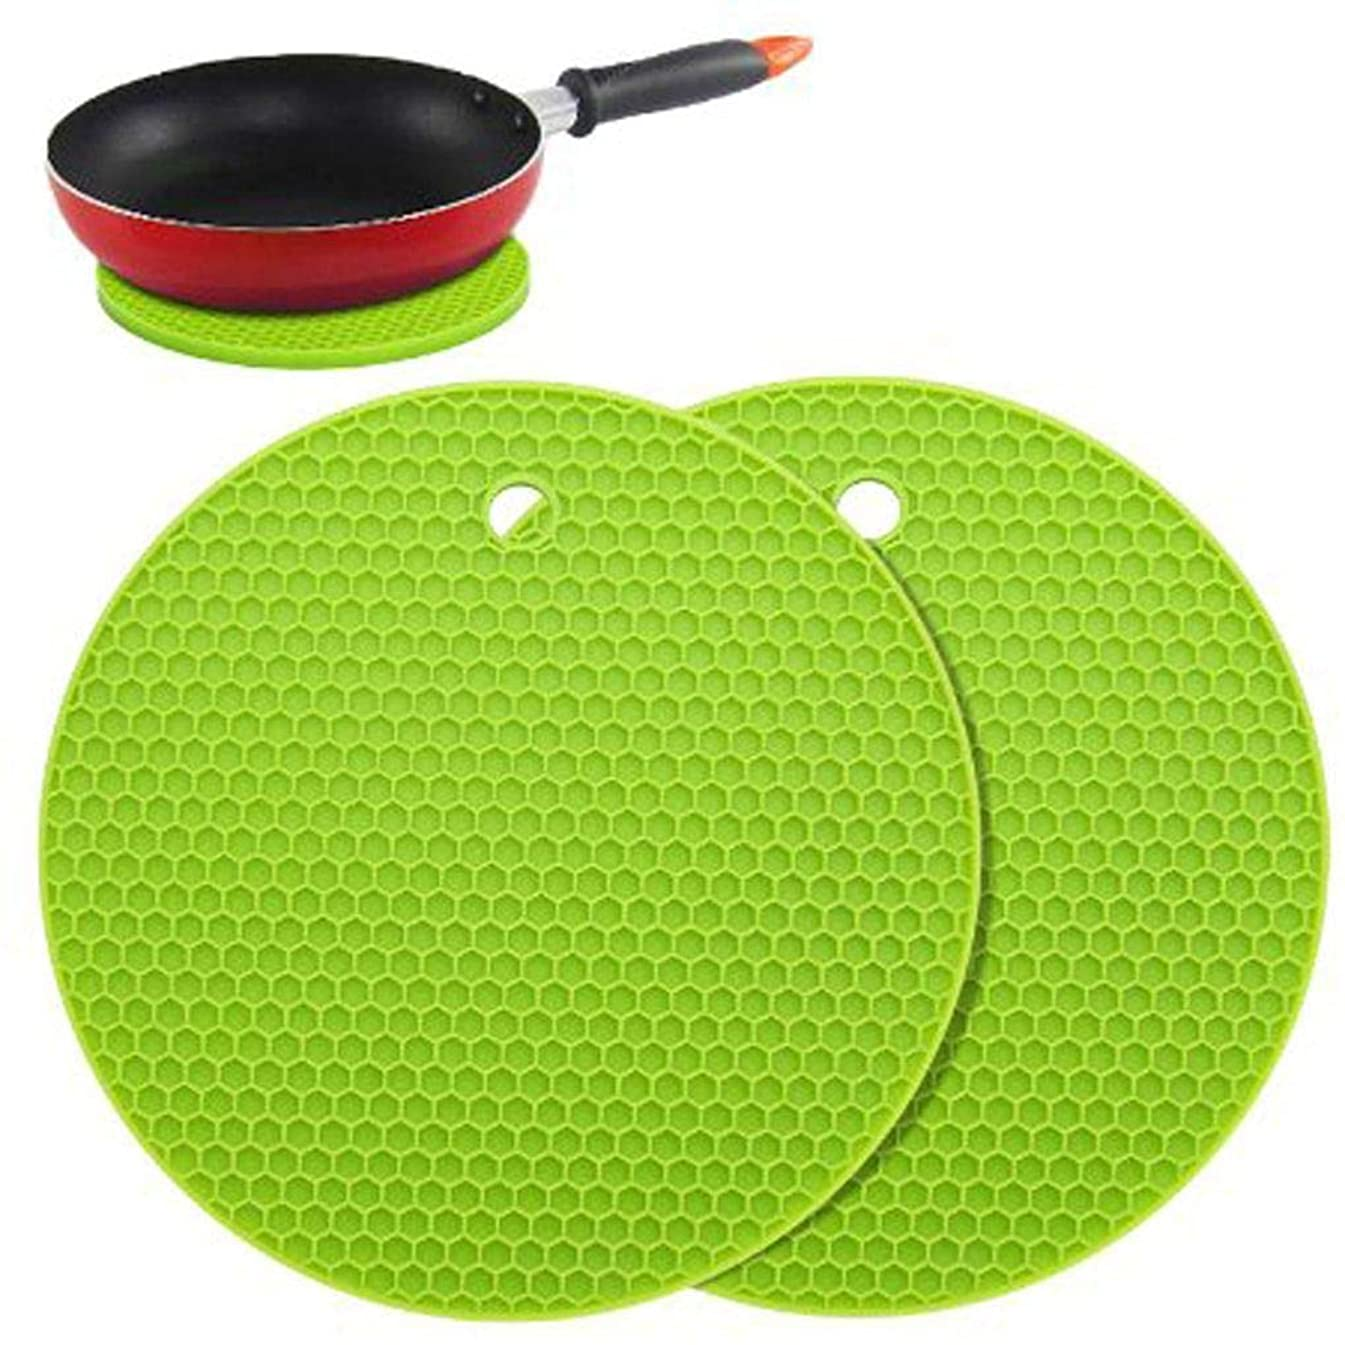 Topfire 2pcs Silicone Pot Holders Multipurpose Round Pot Holders Trivets Jar Openers & Spoon Rests